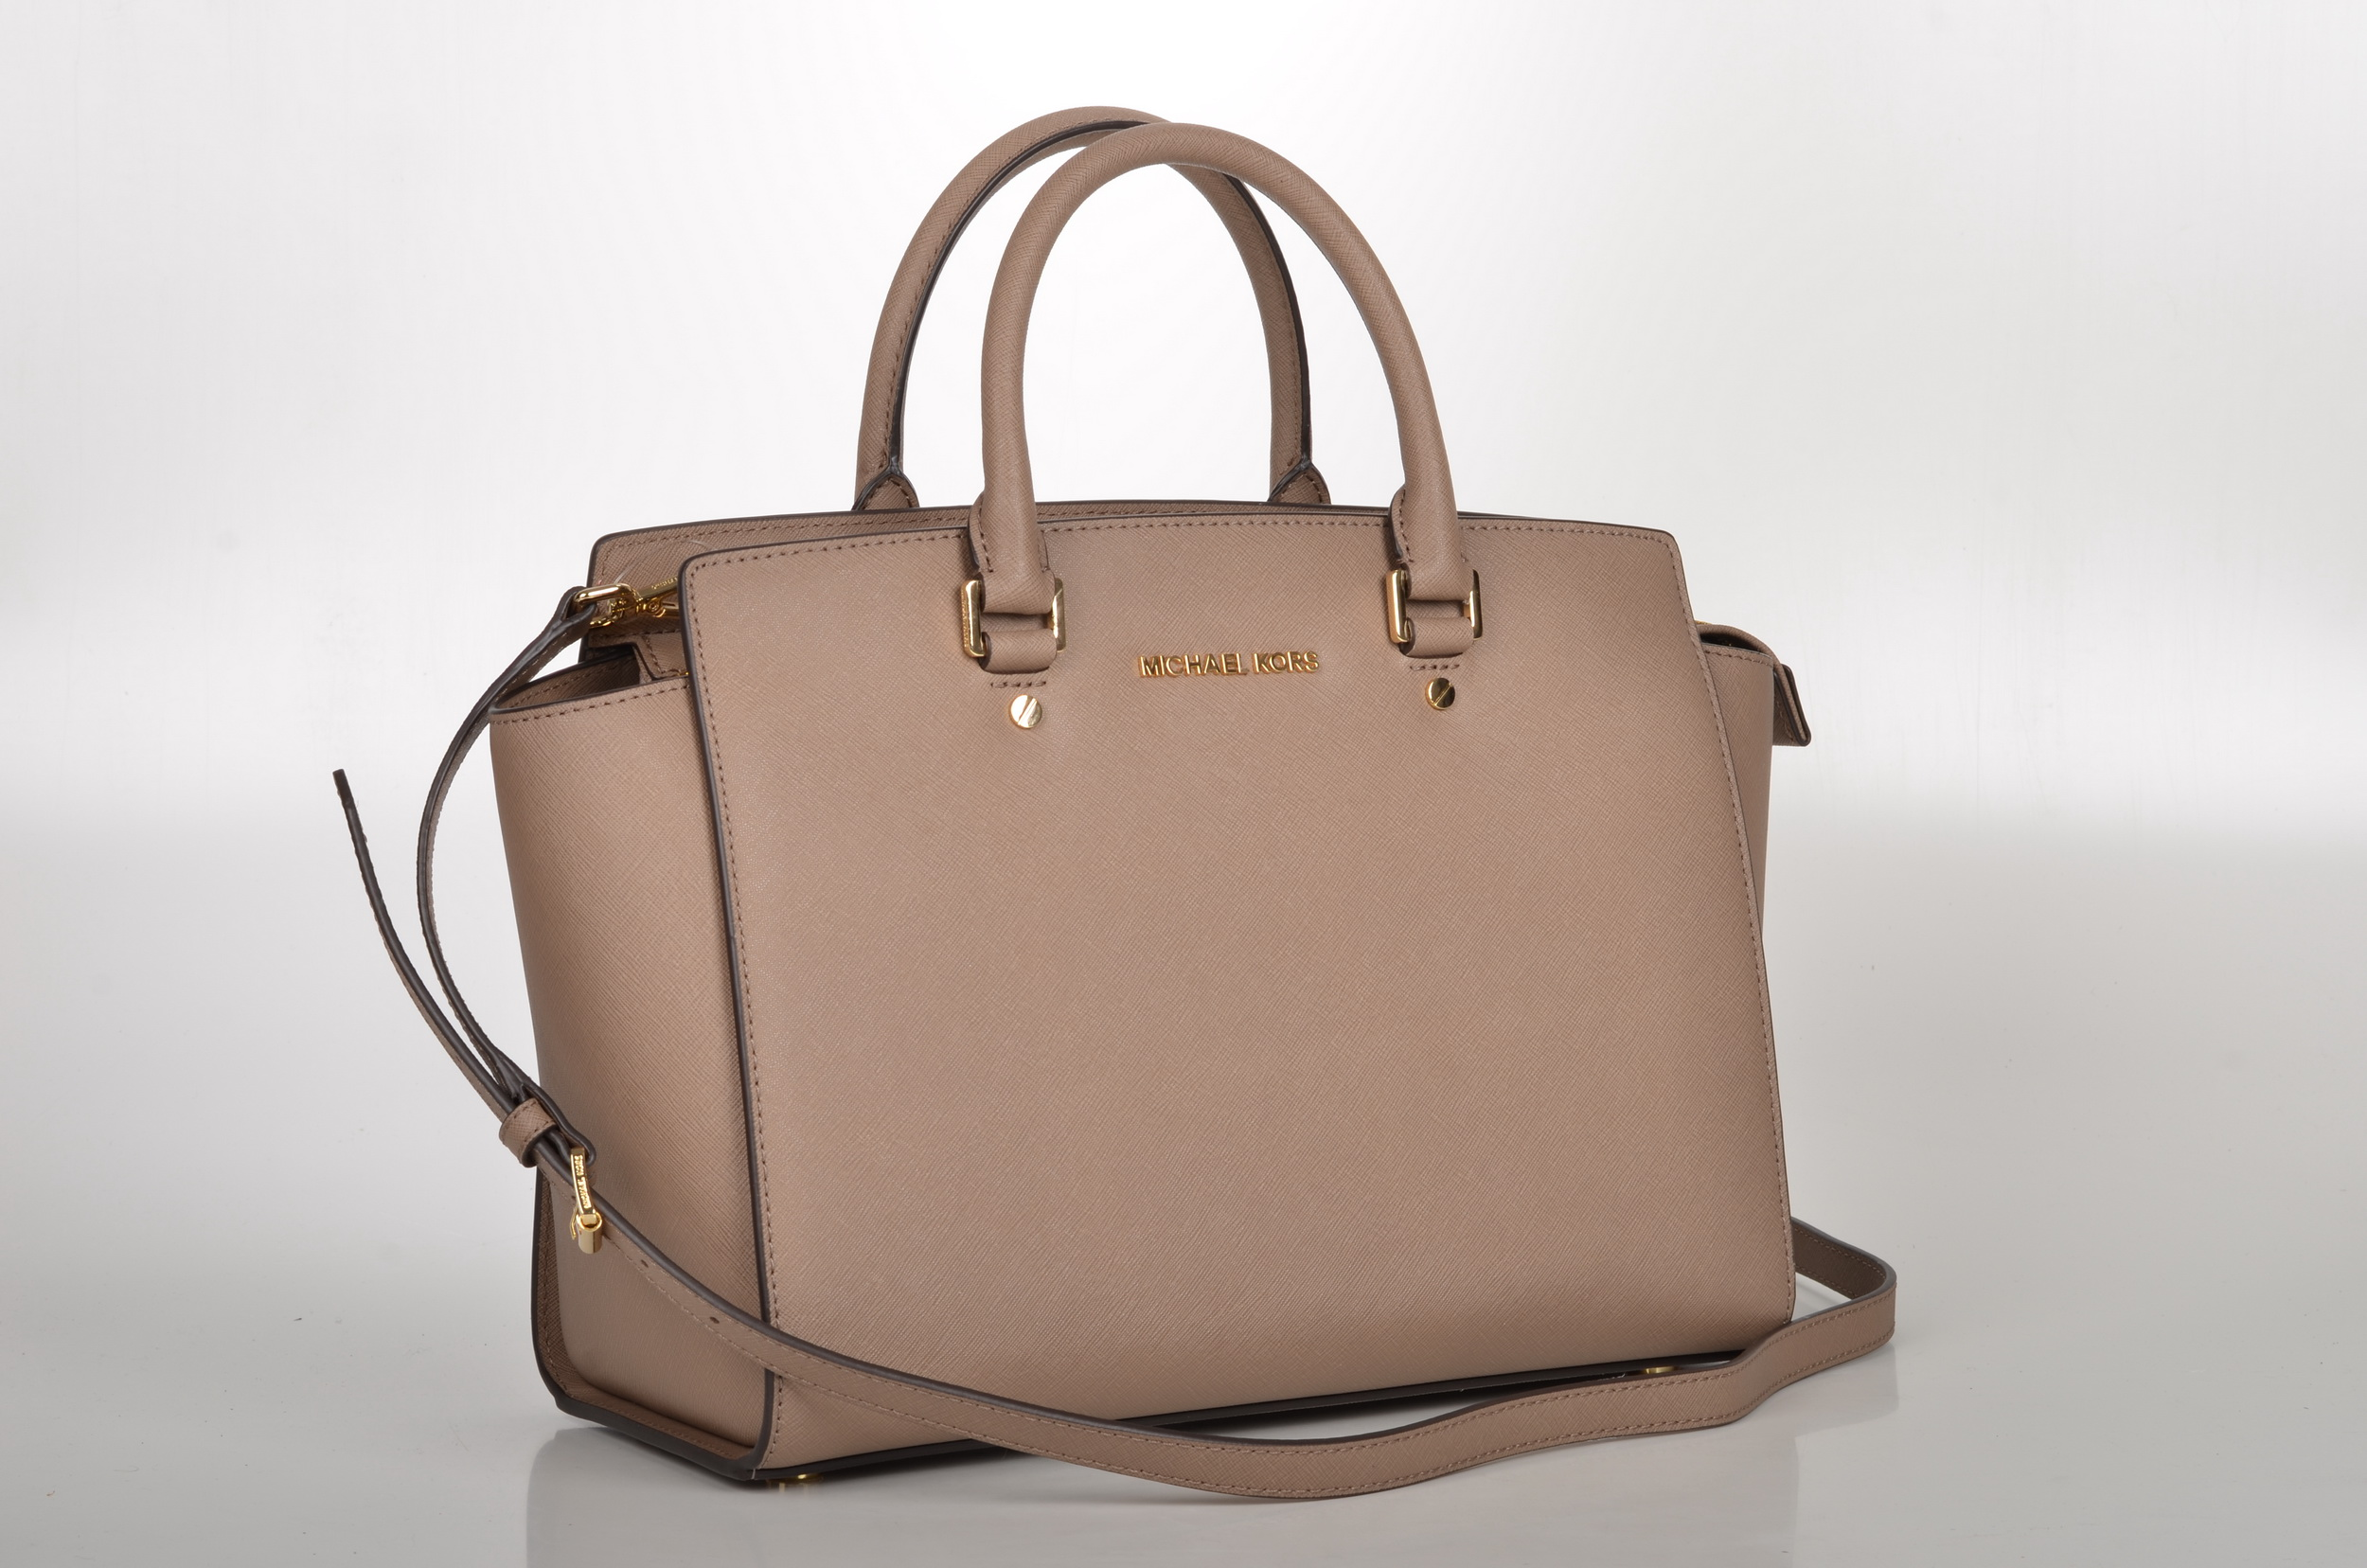 Michael kors bags in dubai - Michael Kors Selma Bag Brown